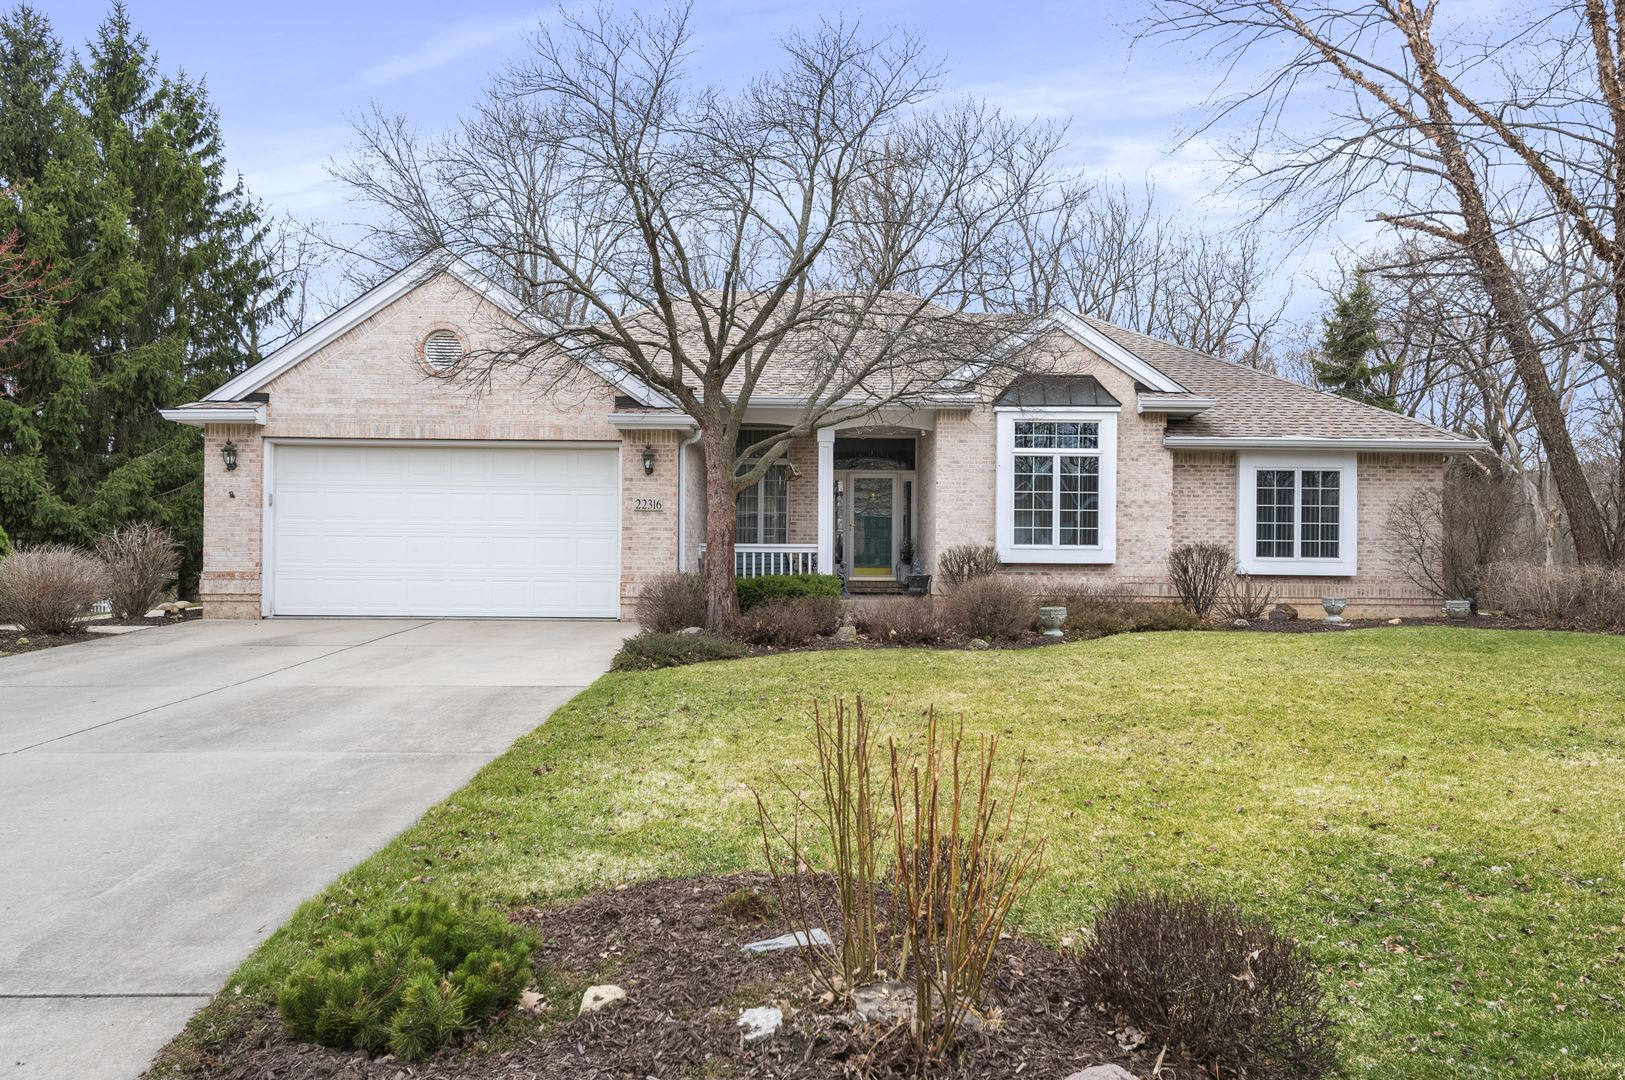 Photo of 22316 S Newcastle Court, Shorewood, IL 60404 (MLS # 11032536)